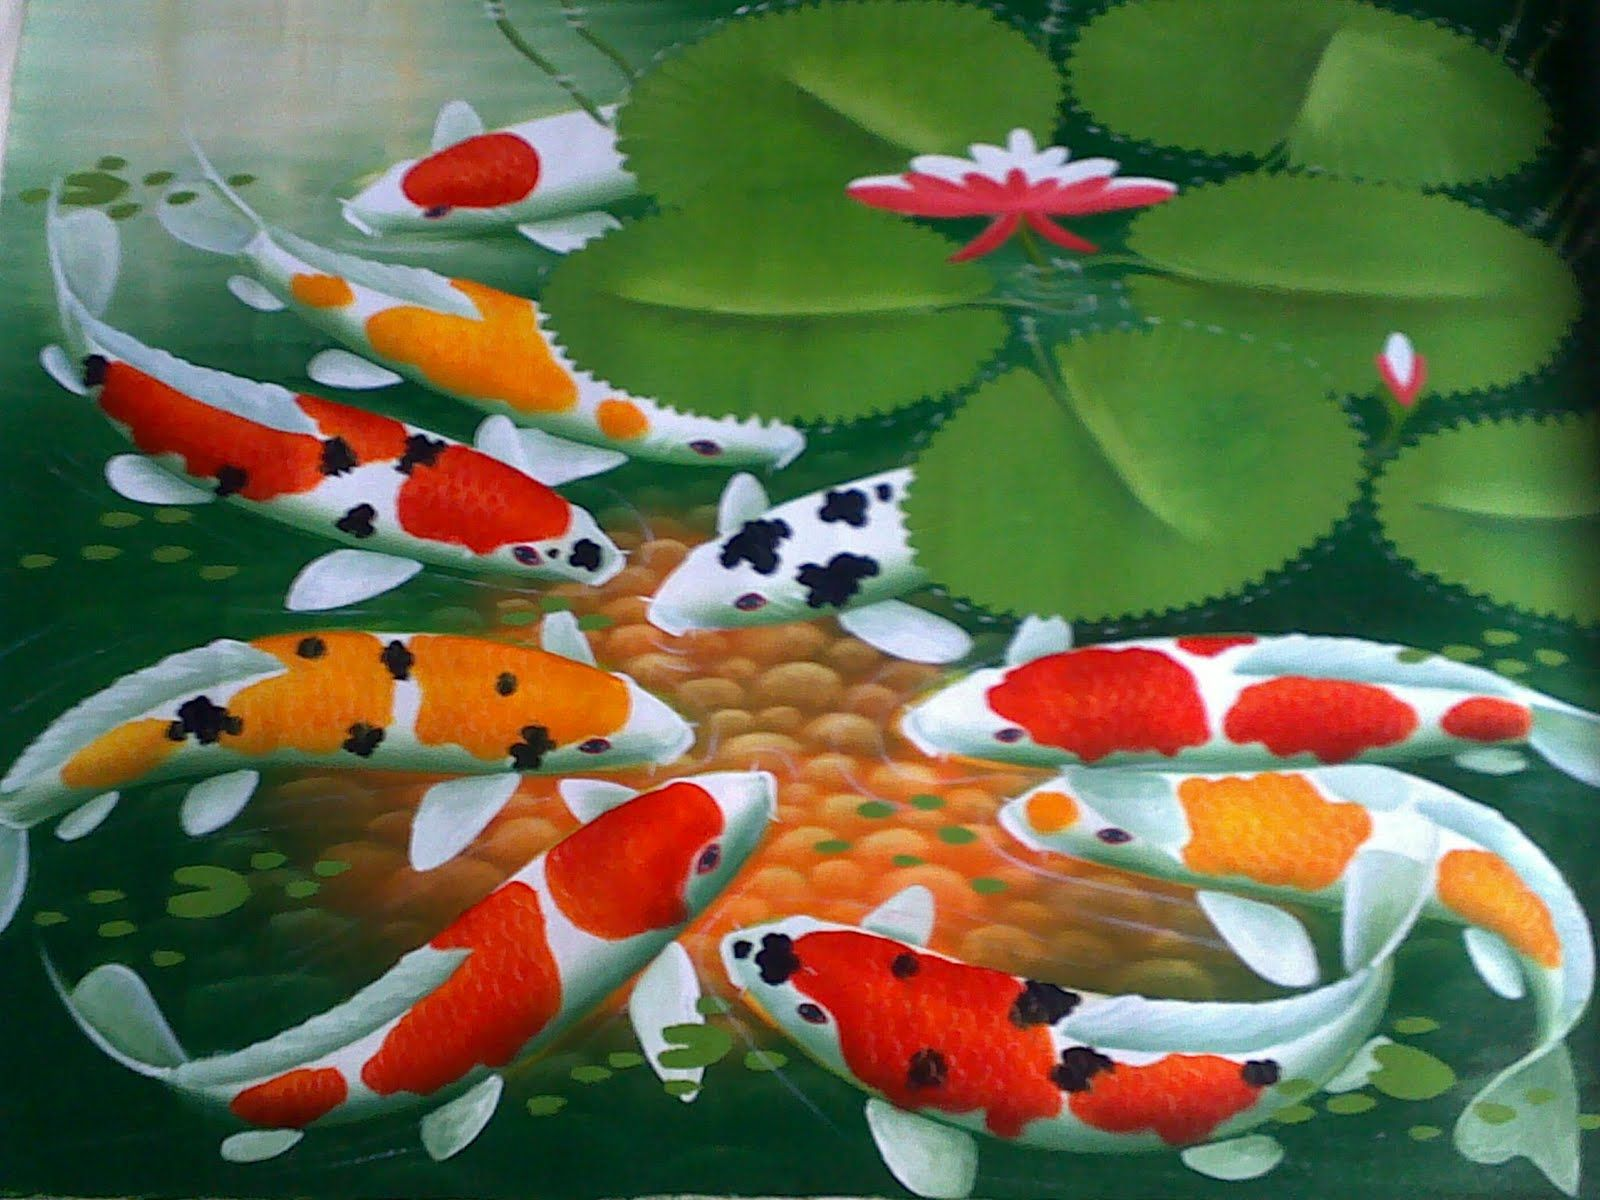 Best wallpaper hd koi fish for desktop free download for Koi fish wallpaper